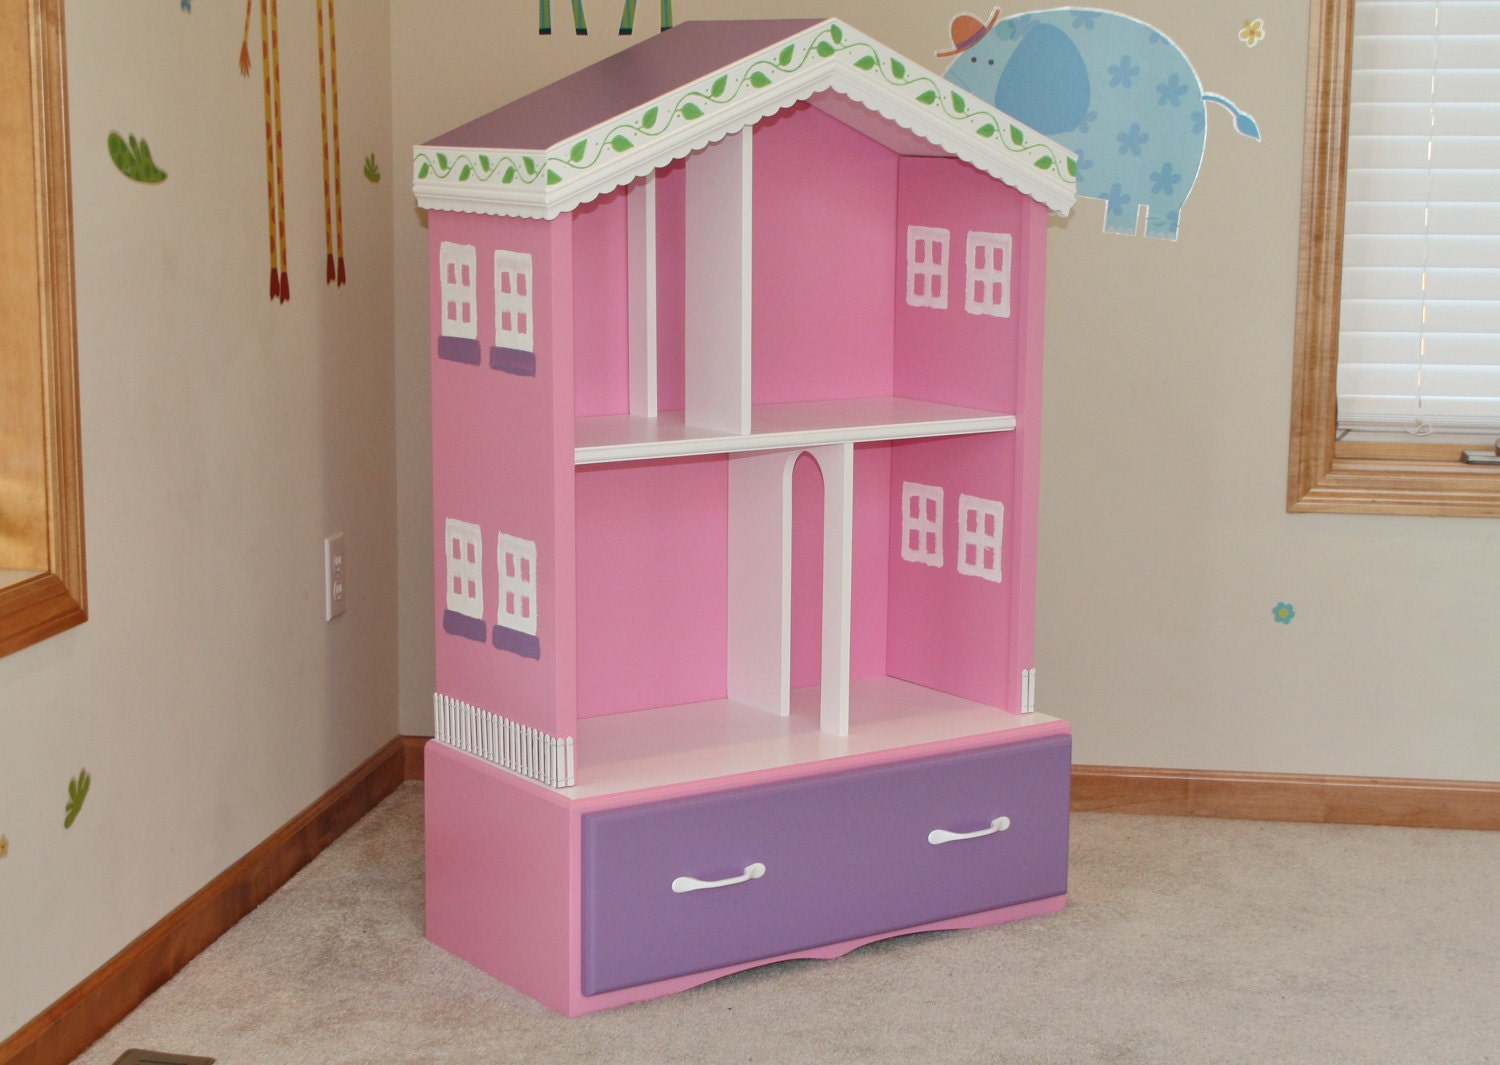 Barbie Doll House By Handcraftedbyneil On Etsy